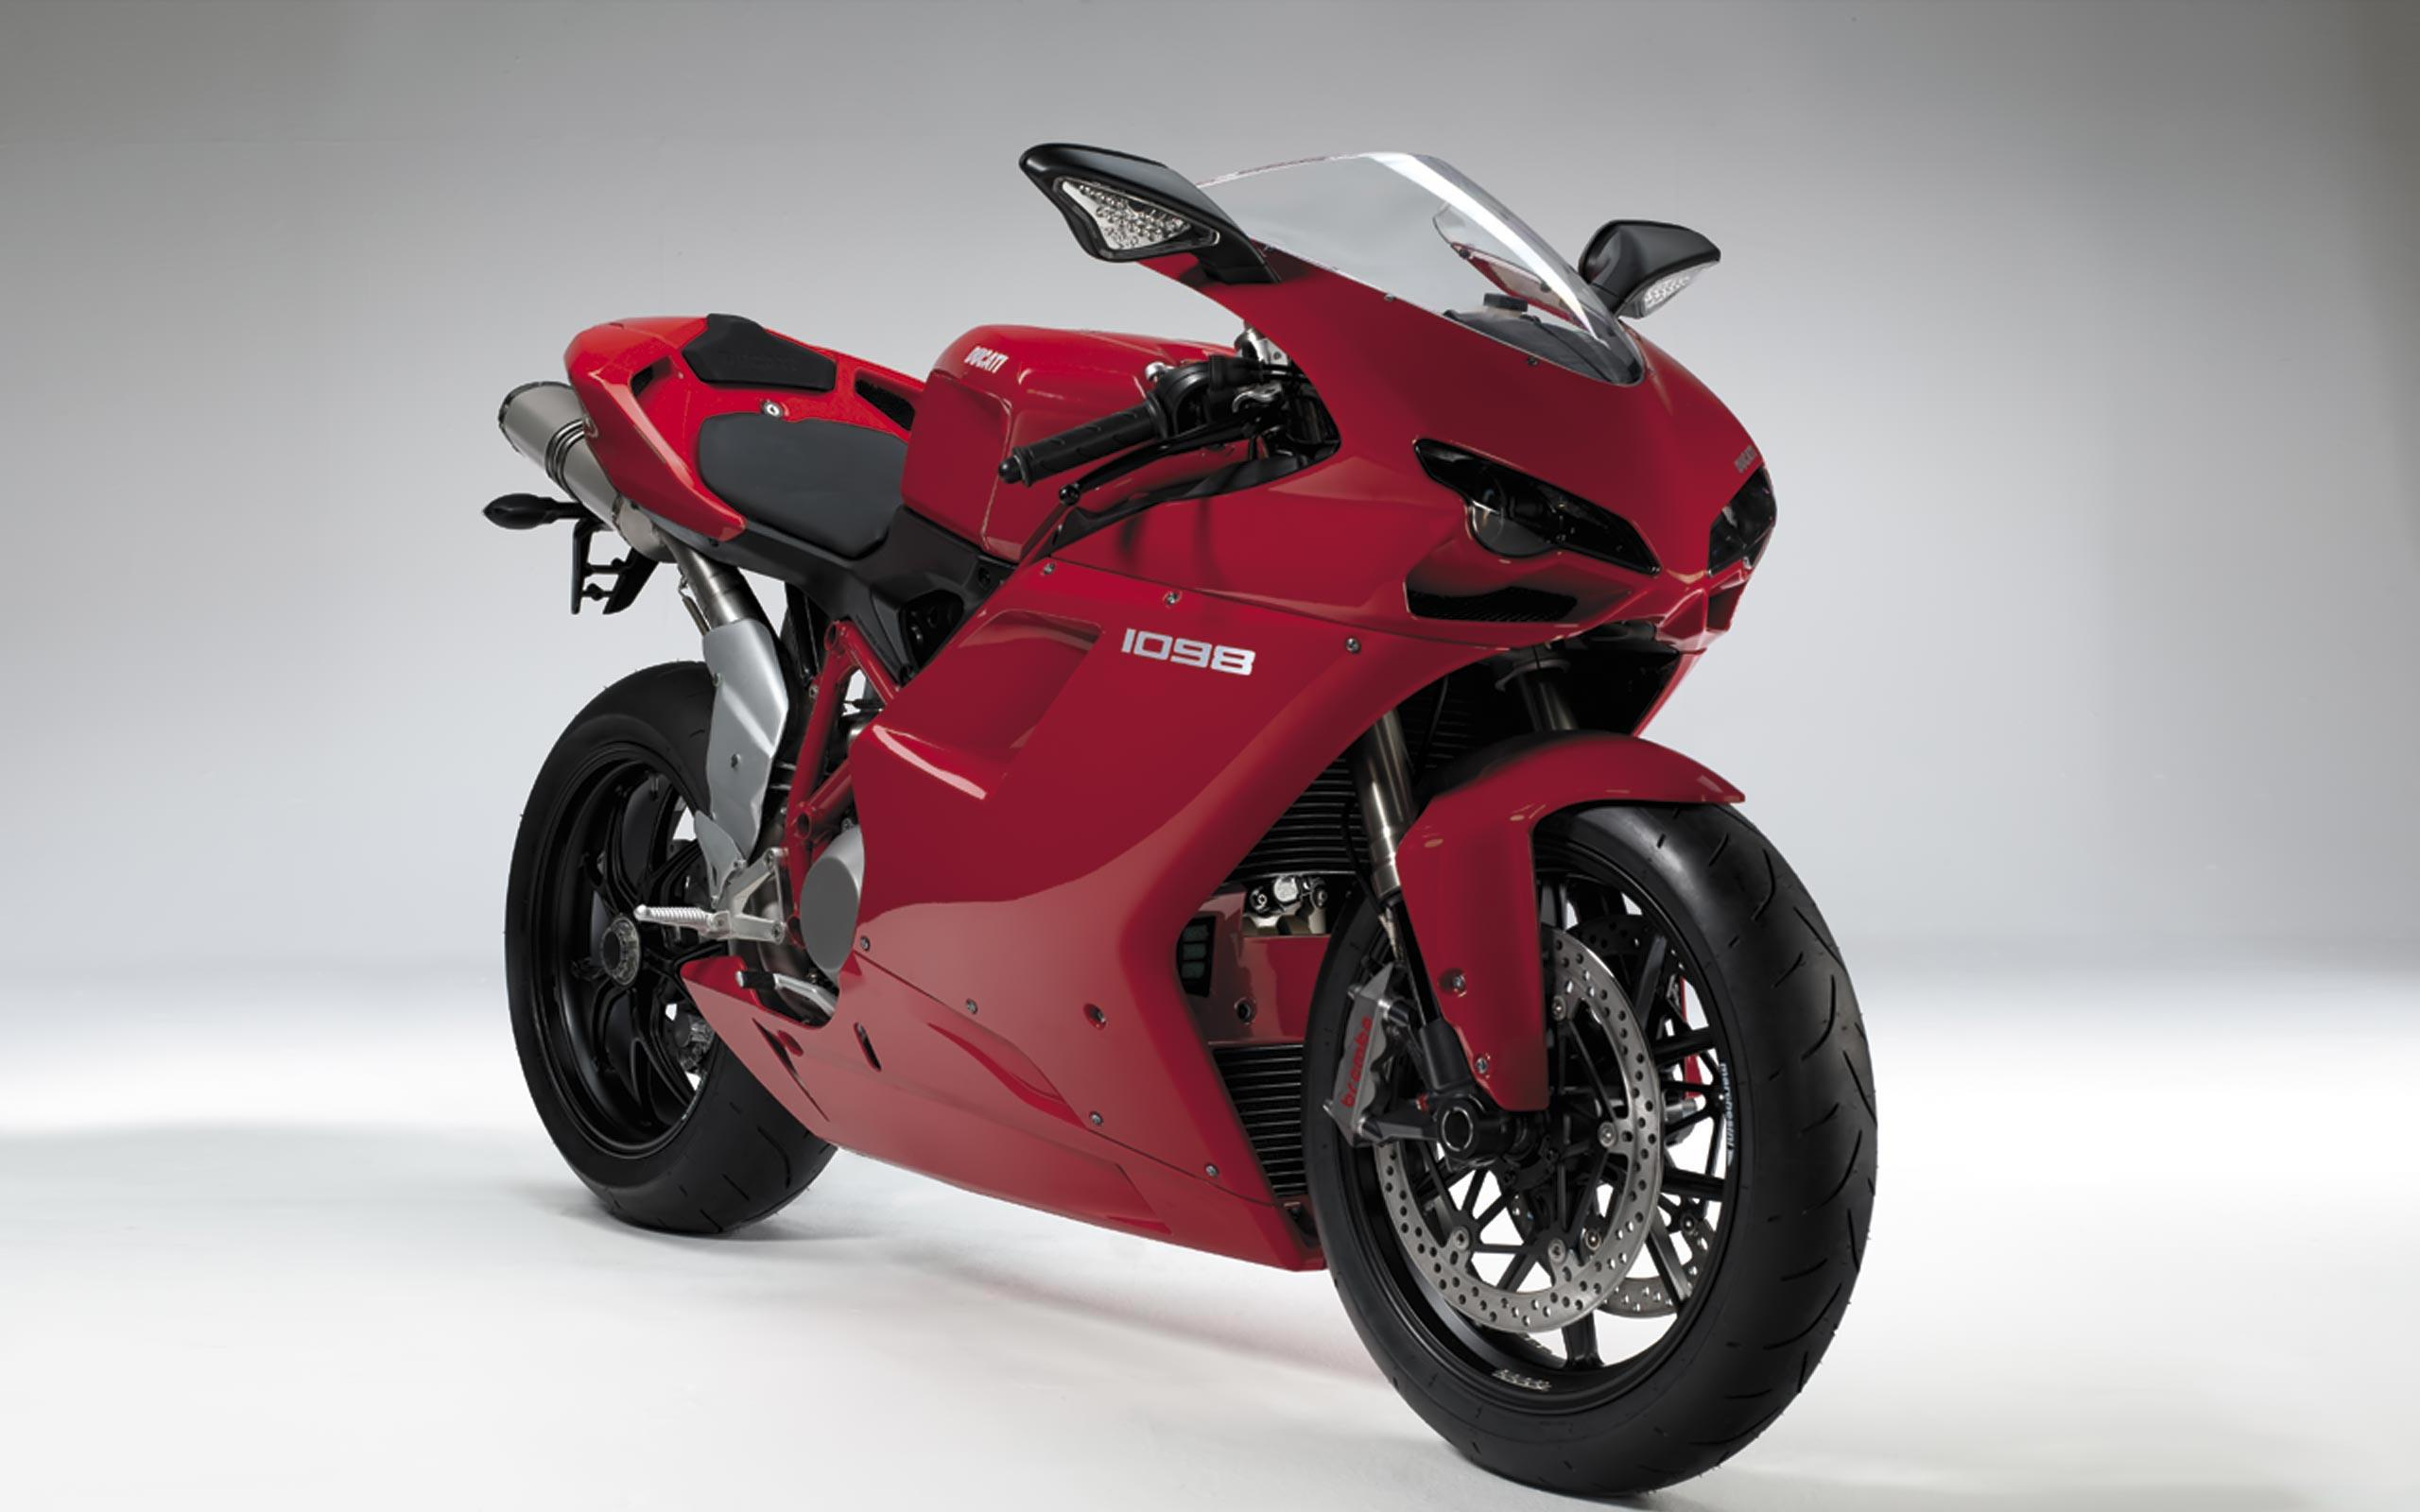 Sport Bikes Wallpapers For Android: Street Bike Wallpapers